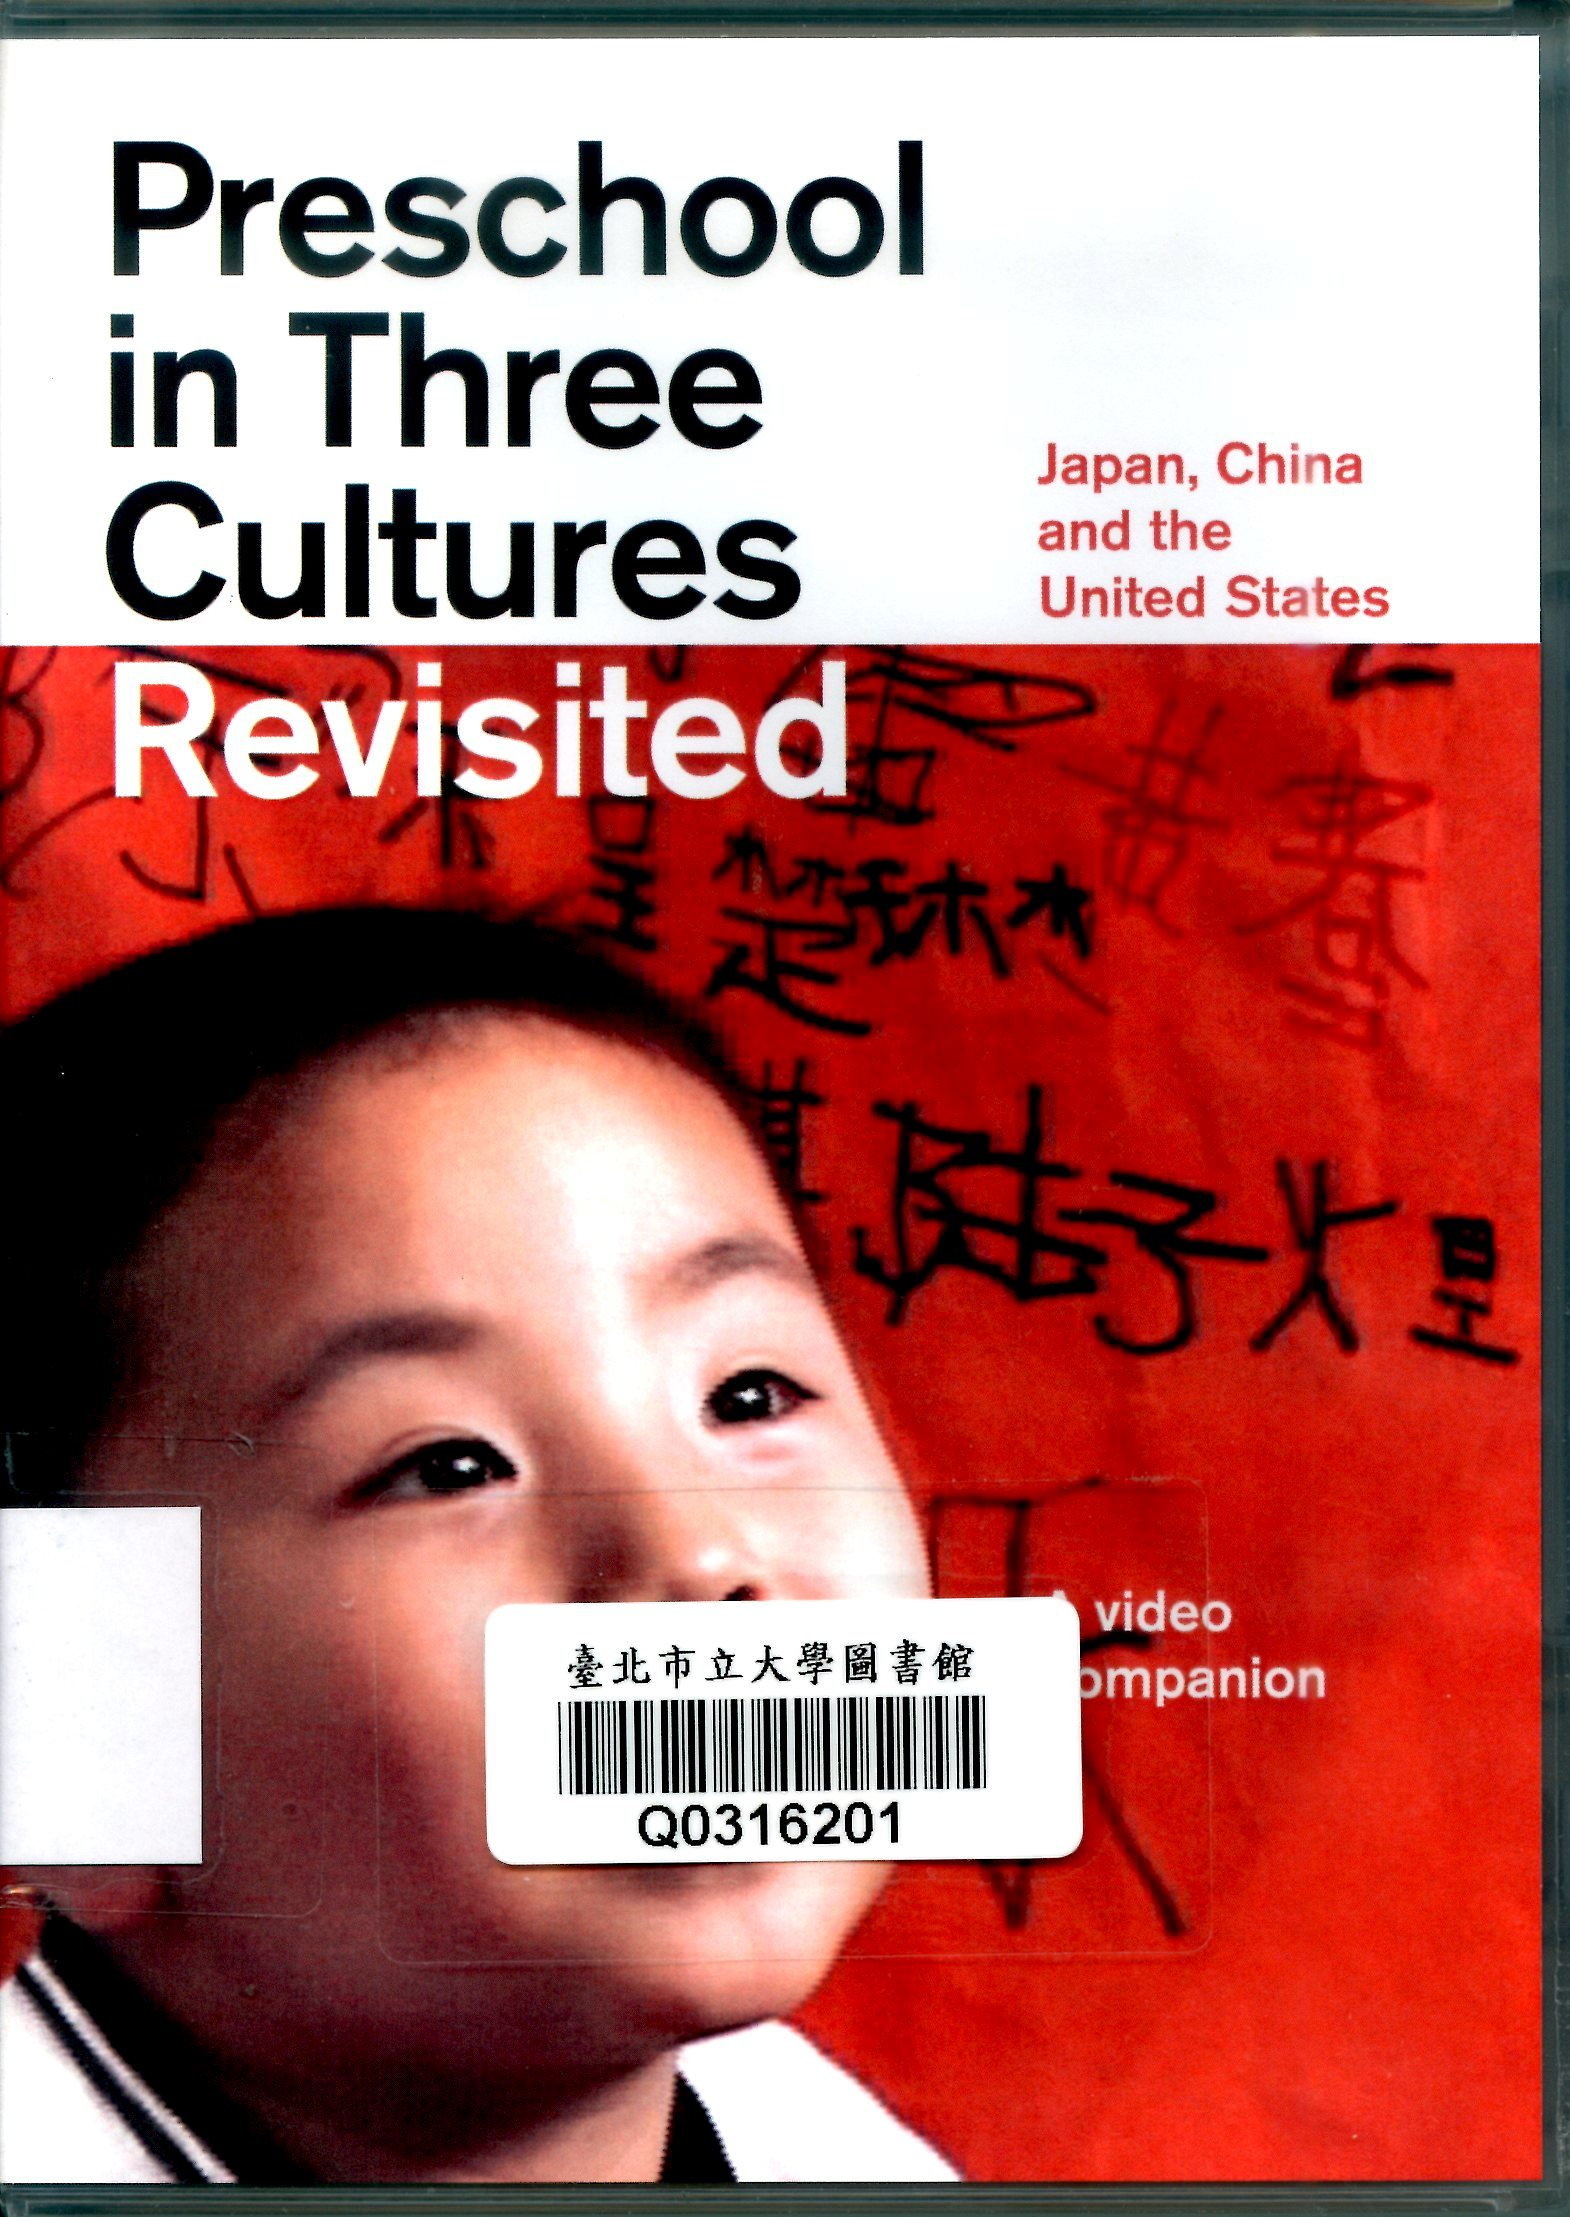 Preschool in three cultures revisited Japan, China and the United States /